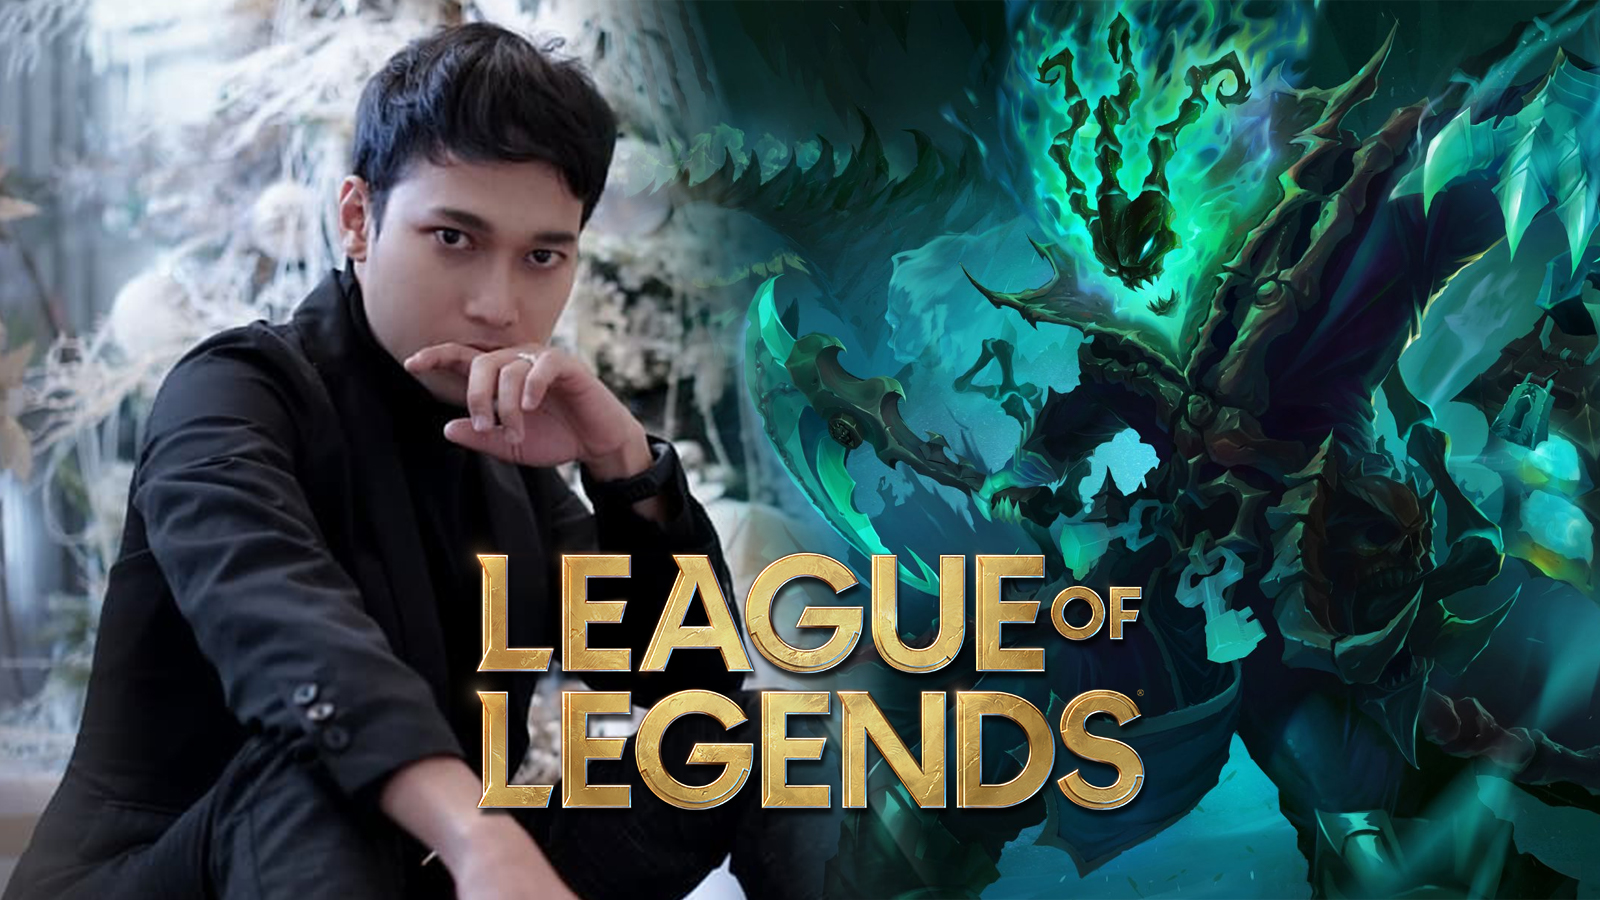 Thresh cosplay in League of Legends